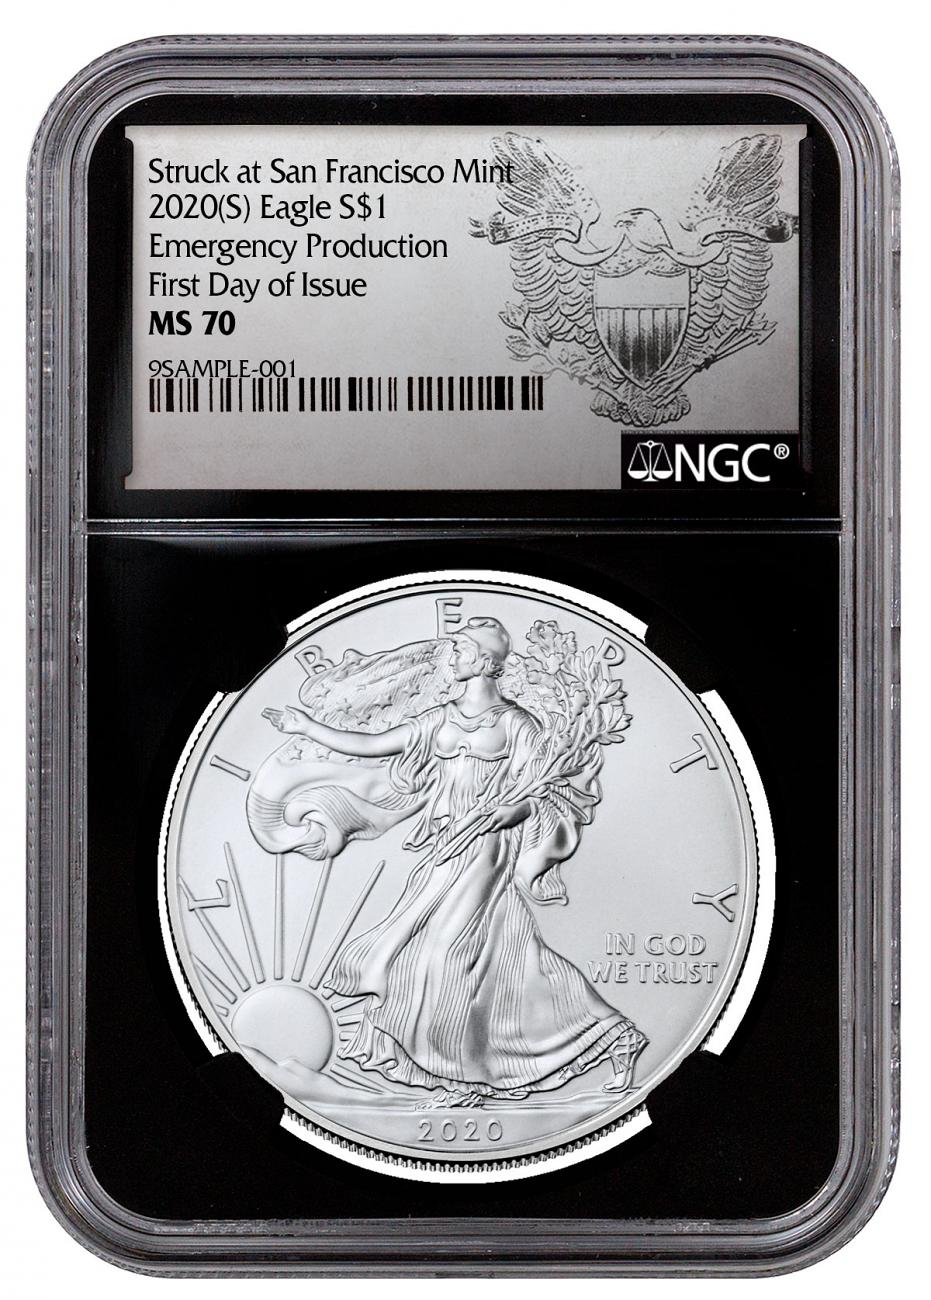 2020-(S) 1 oz American Silver Eagle Struck at San Francisco Mint Emergency Production NGC MS70 FDI Black Core Holder Exclusive Heraldic Eagle Label